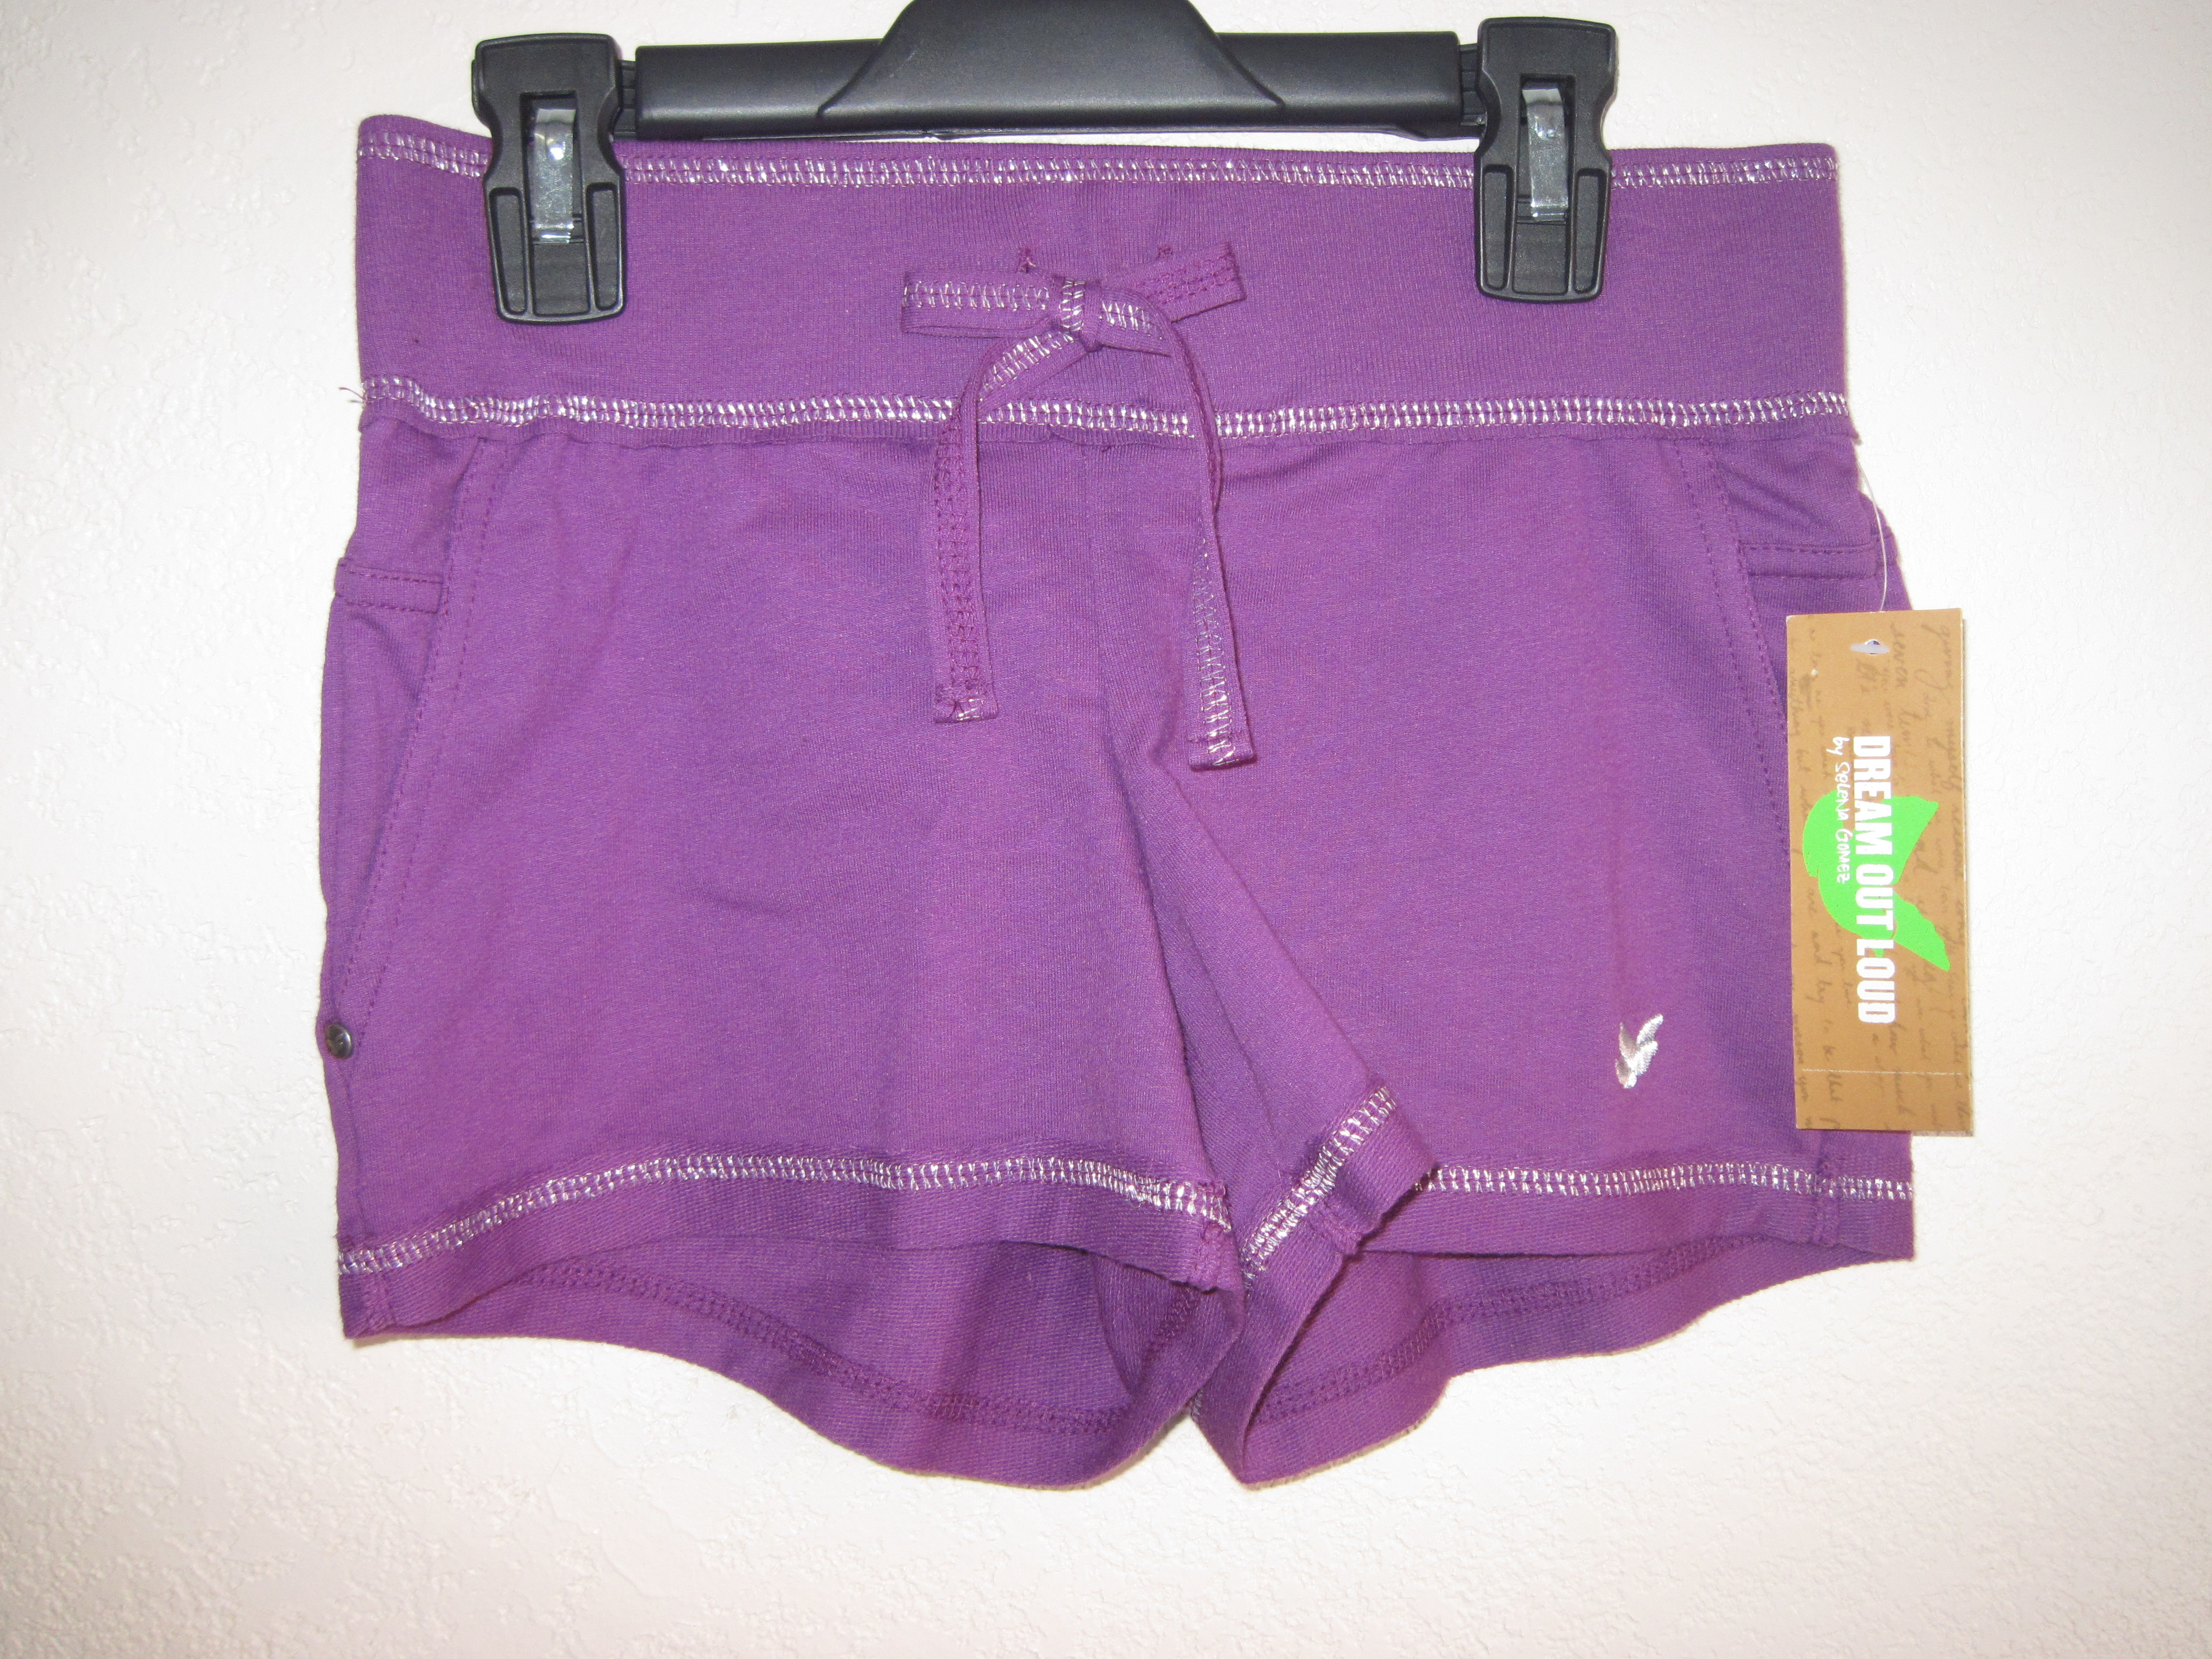 Dream Out Loud by Selena Gomez Sz Small Relaxing Shorts(purple)